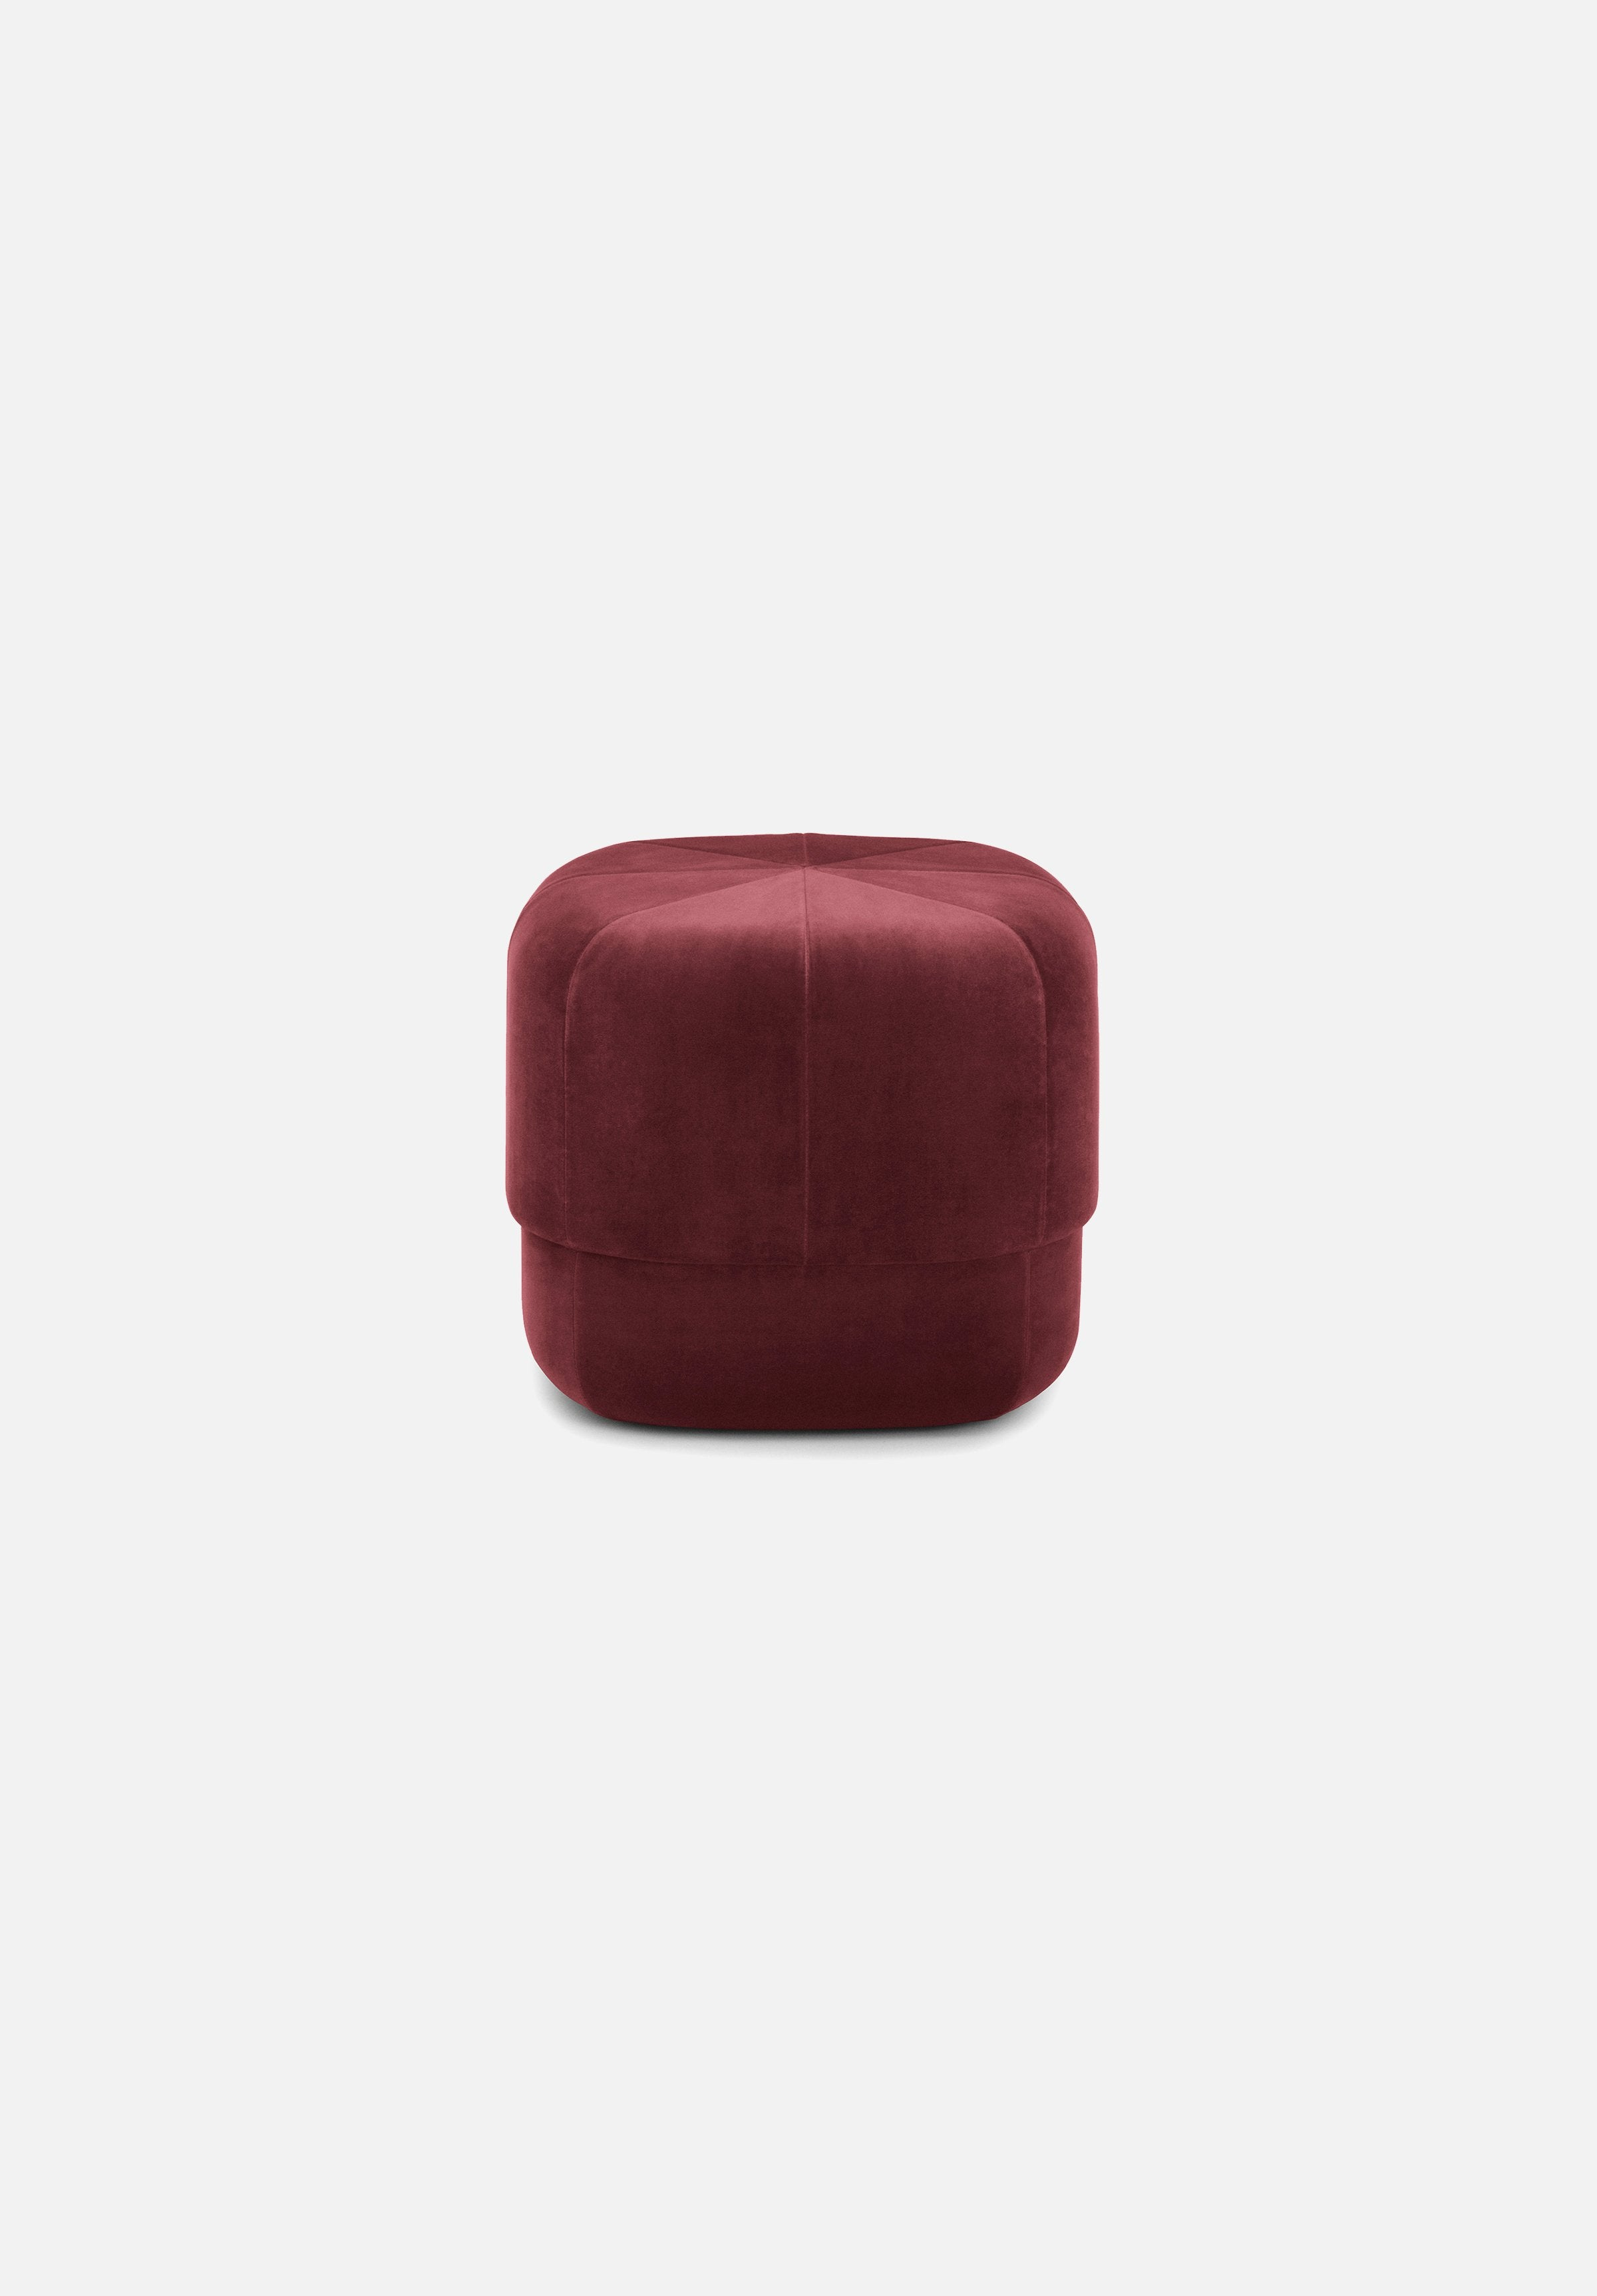 Circus Pouf — Small-Simon Legald-Normann Copenhagen-Dark Red-Average